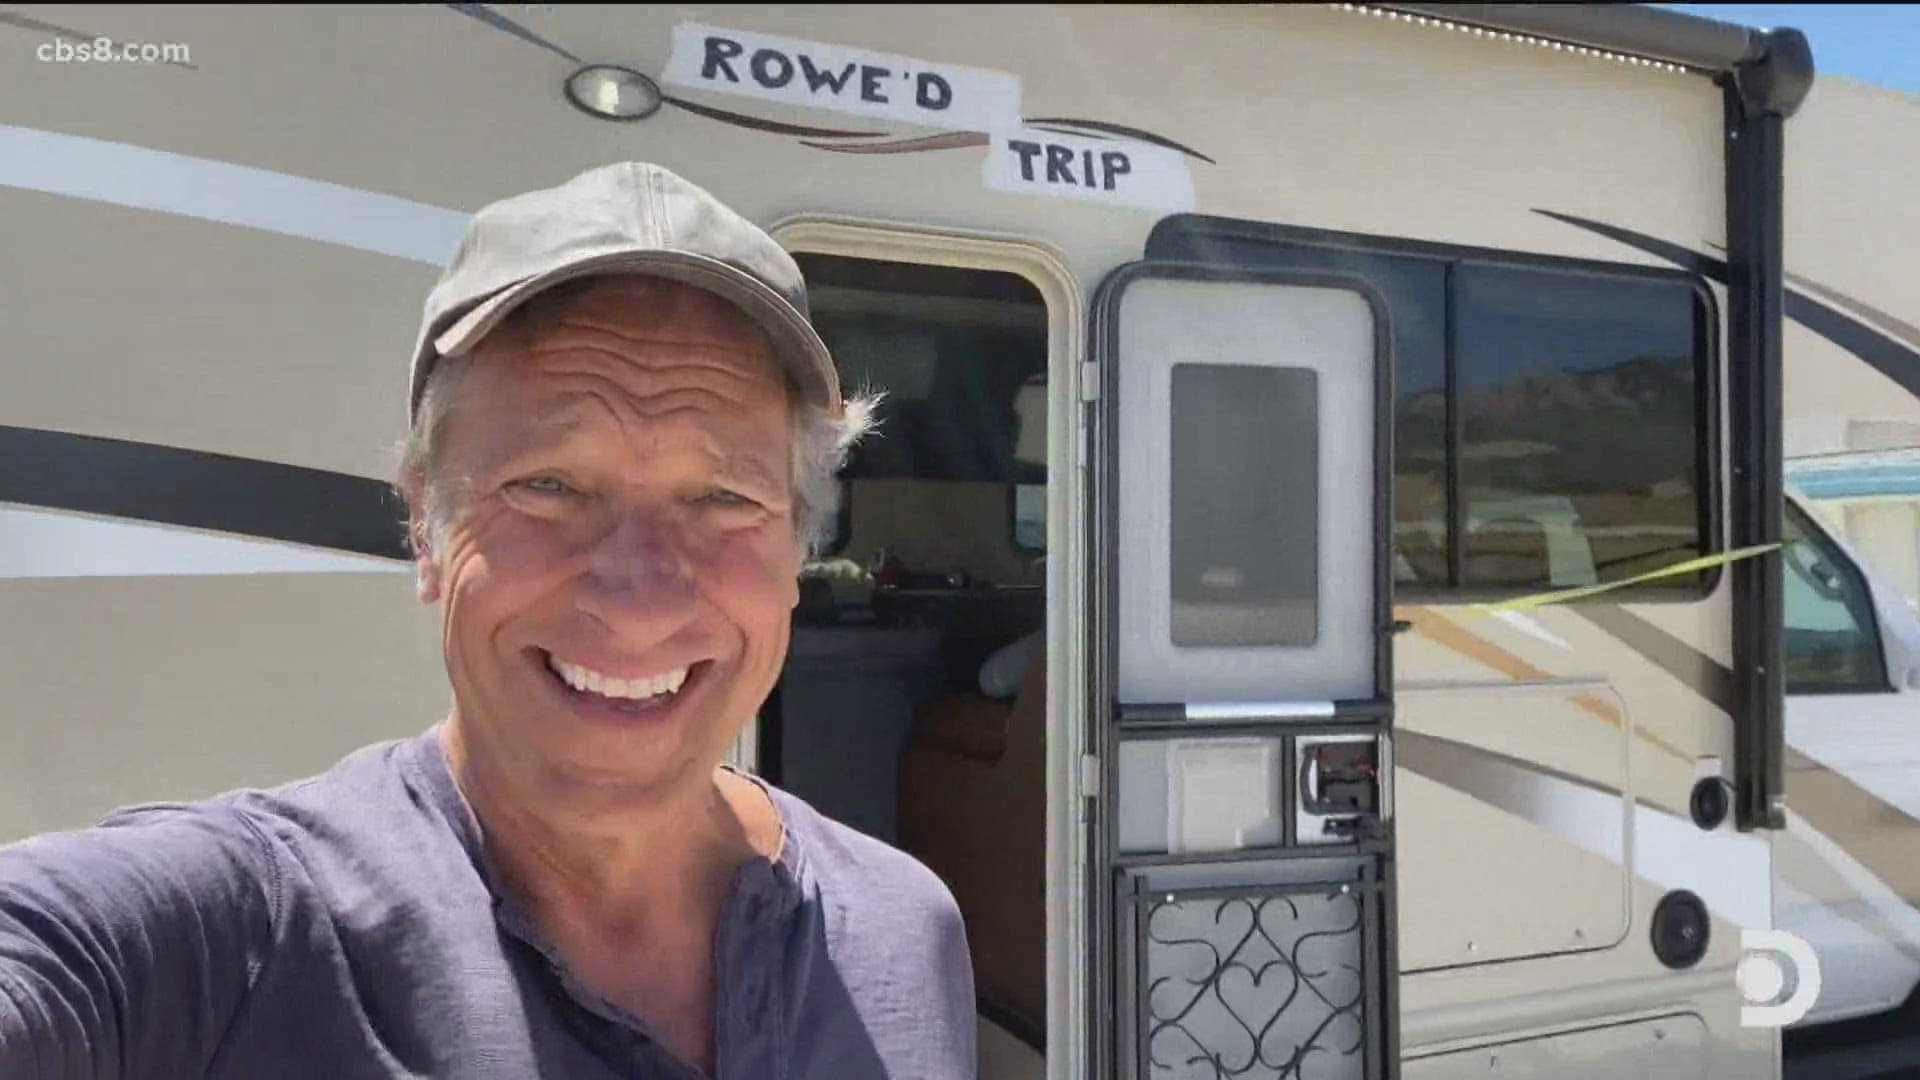 Dirty Jobs: Rowe'd Trip with Mike Rowe Moonshine Post-Production for Online Editing and ADR